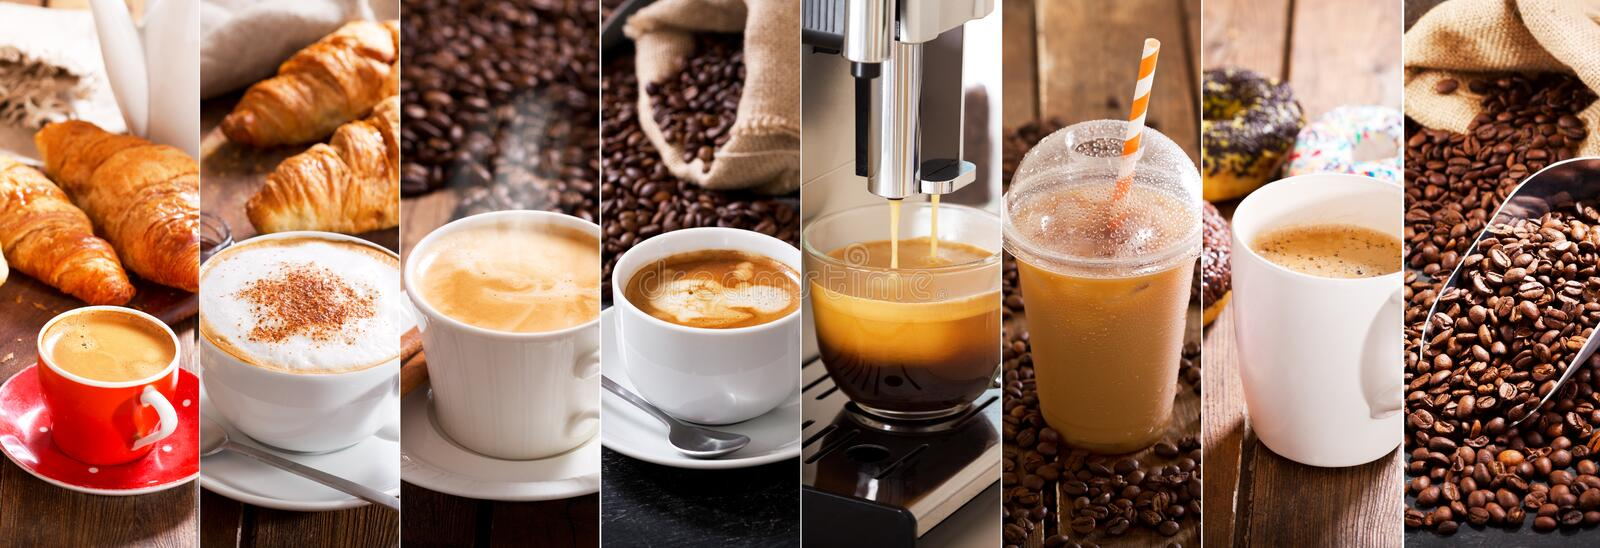 Coffee collage of various cups stock image